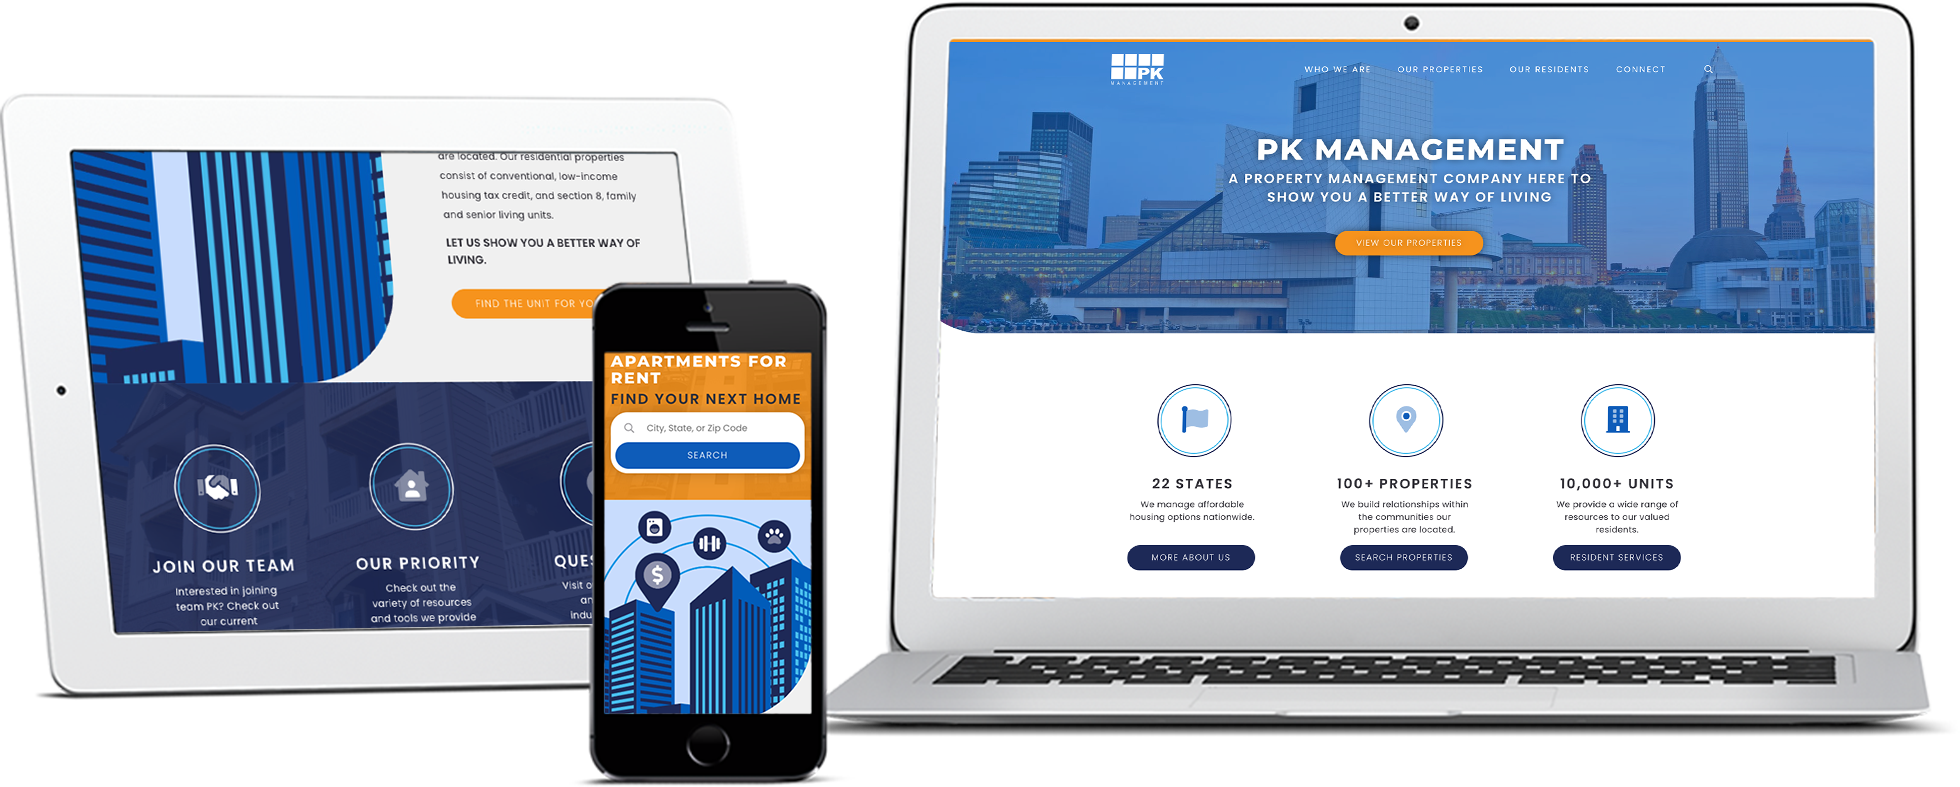 PK Management site on tablet, smartphone, and laptop screen